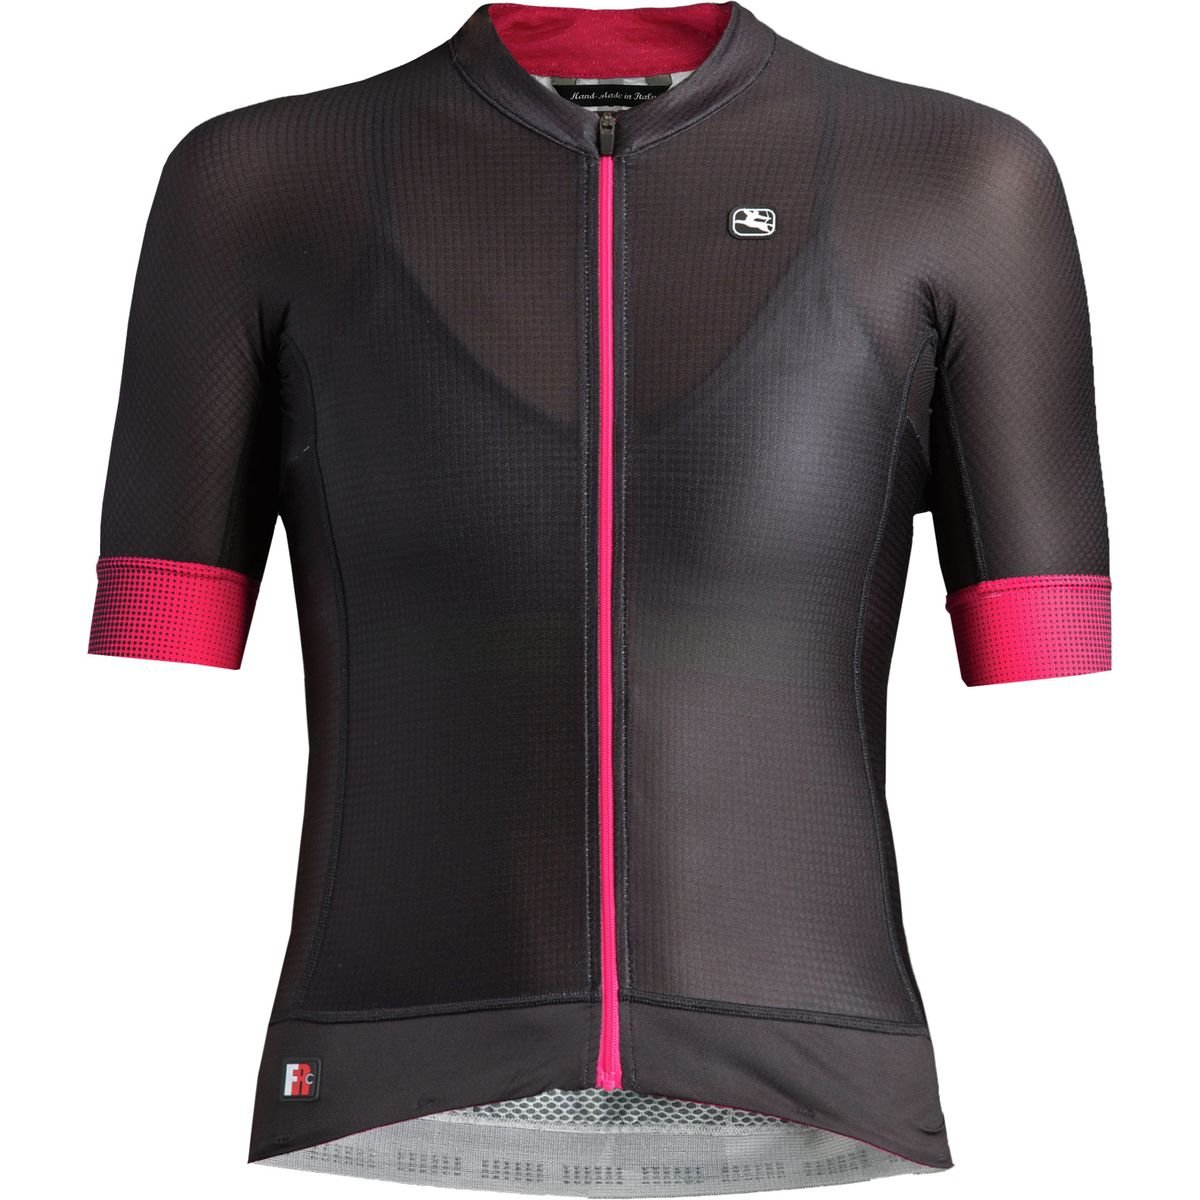 Giordana FR-C Pro Short-Sleeve Jersey - Women's Black/Pink, XL